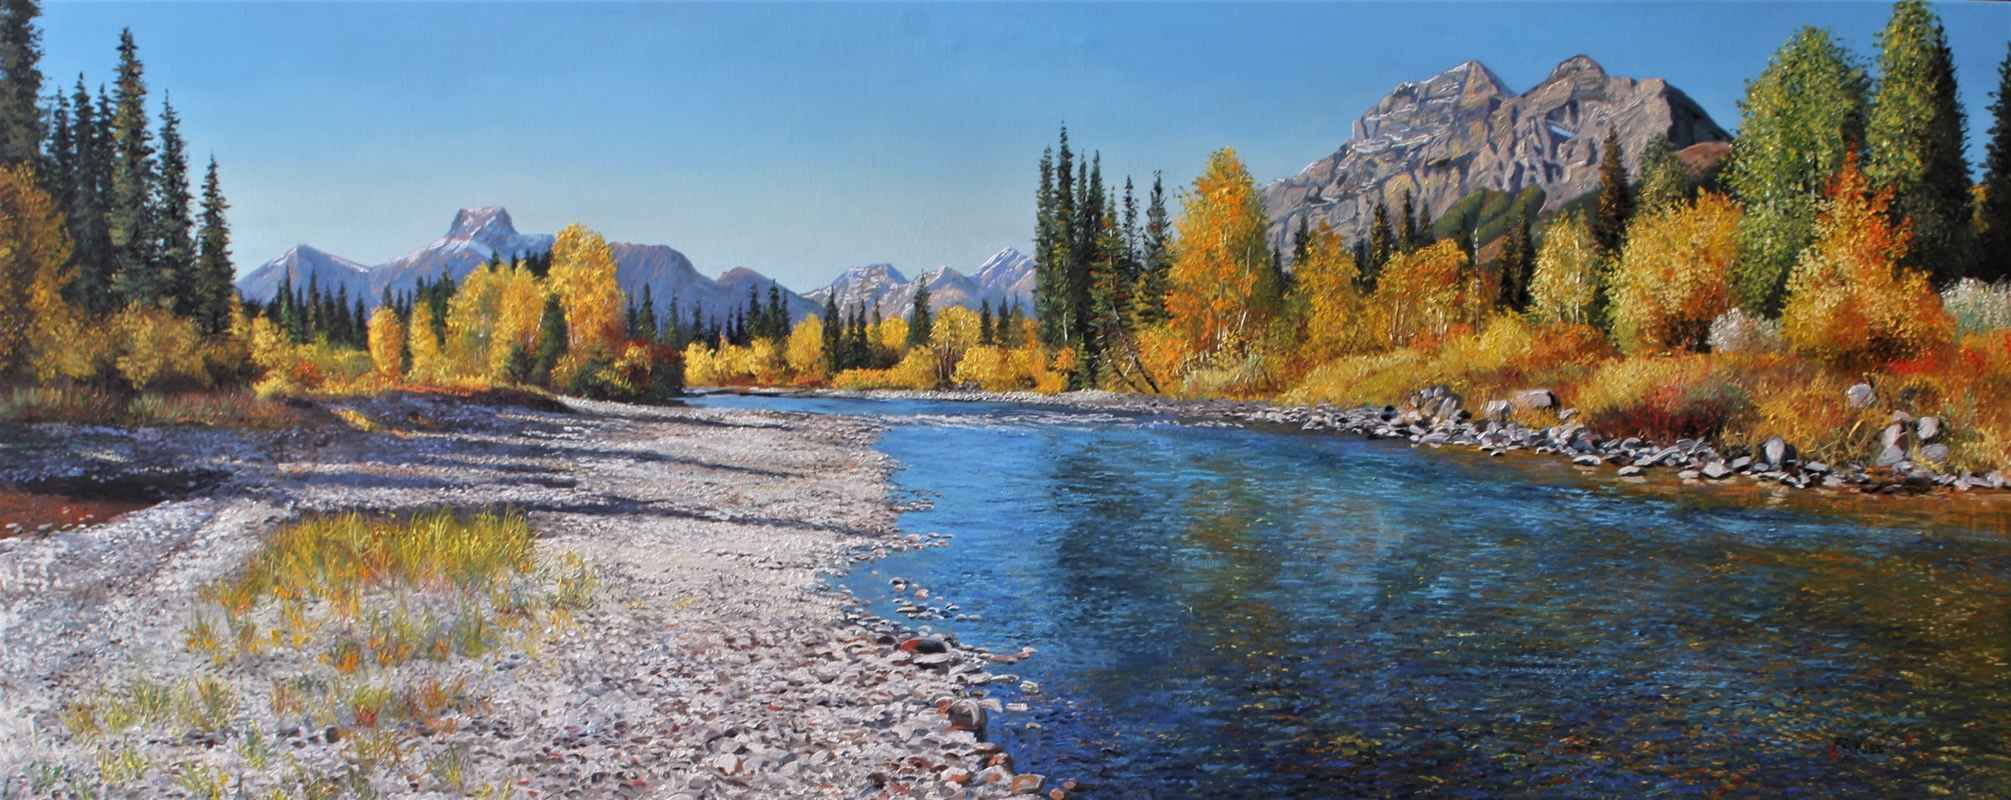 Kananaskis River Look... by  Andrew Kiss - Masterpiece Online